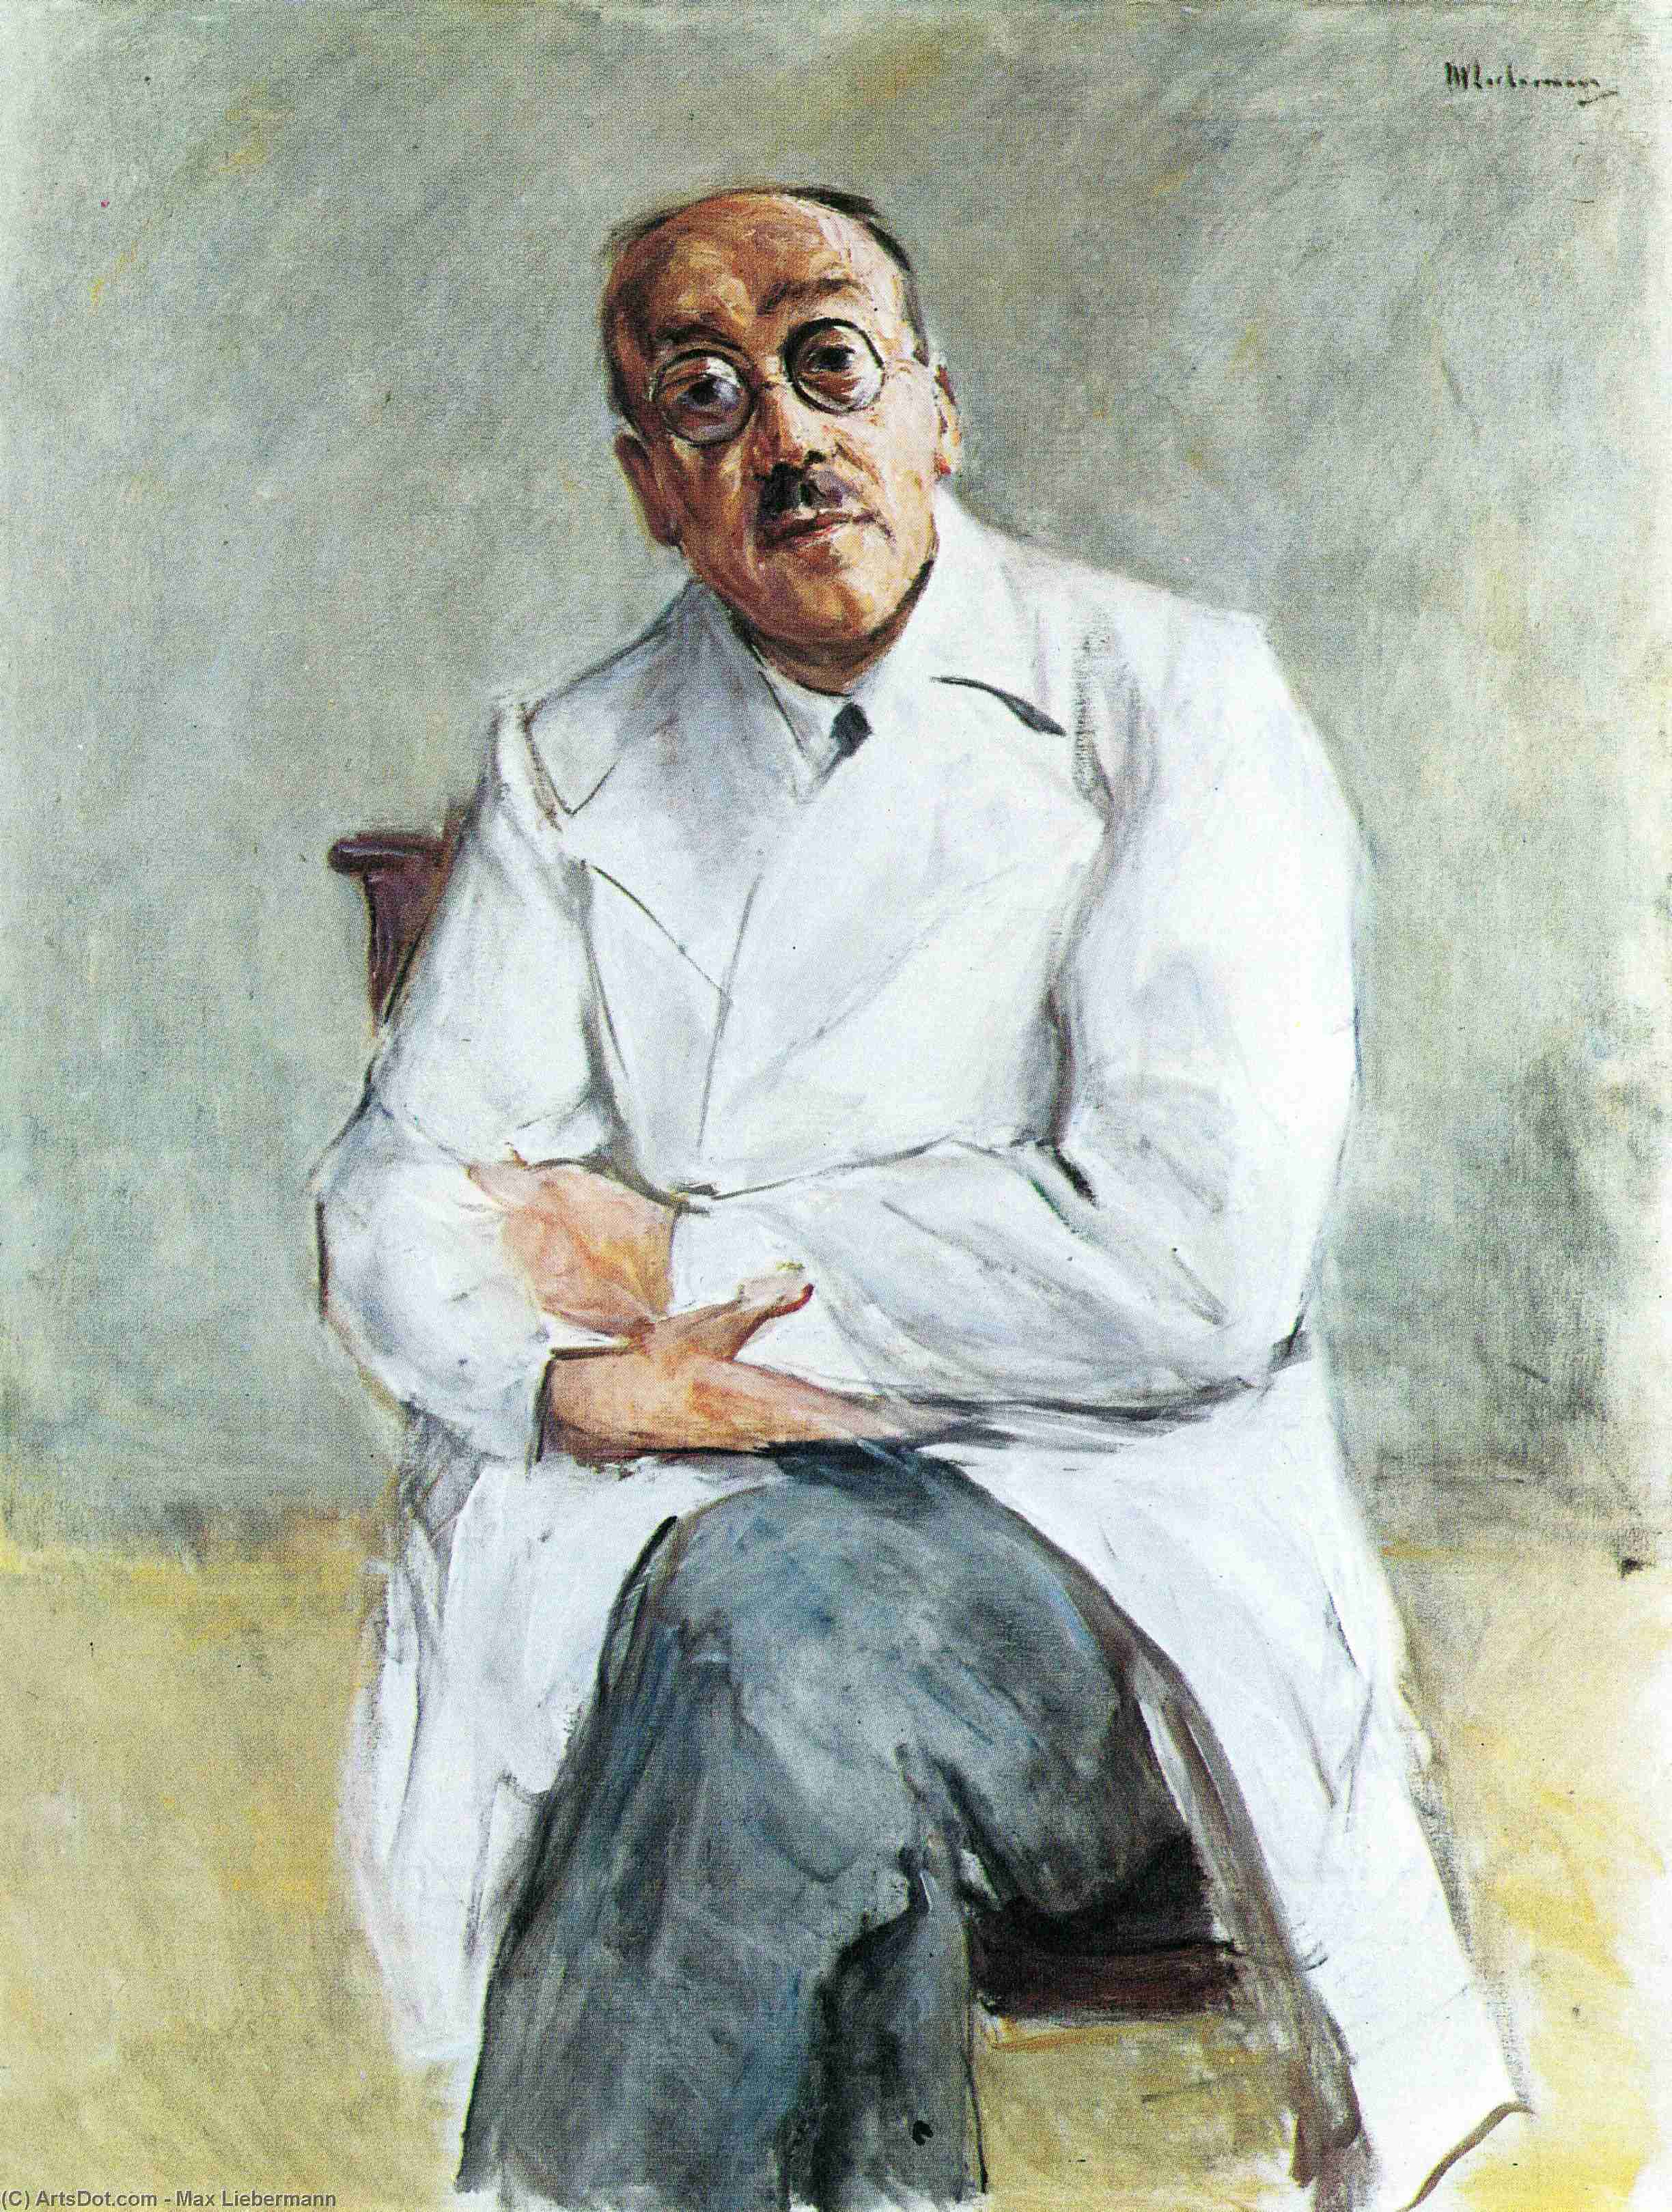 Wikioo.org - The Encyclopedia of Fine Arts - Painting, Artwork by Max Liebermann - The Surgeon, Ferdinand Sauerbruch